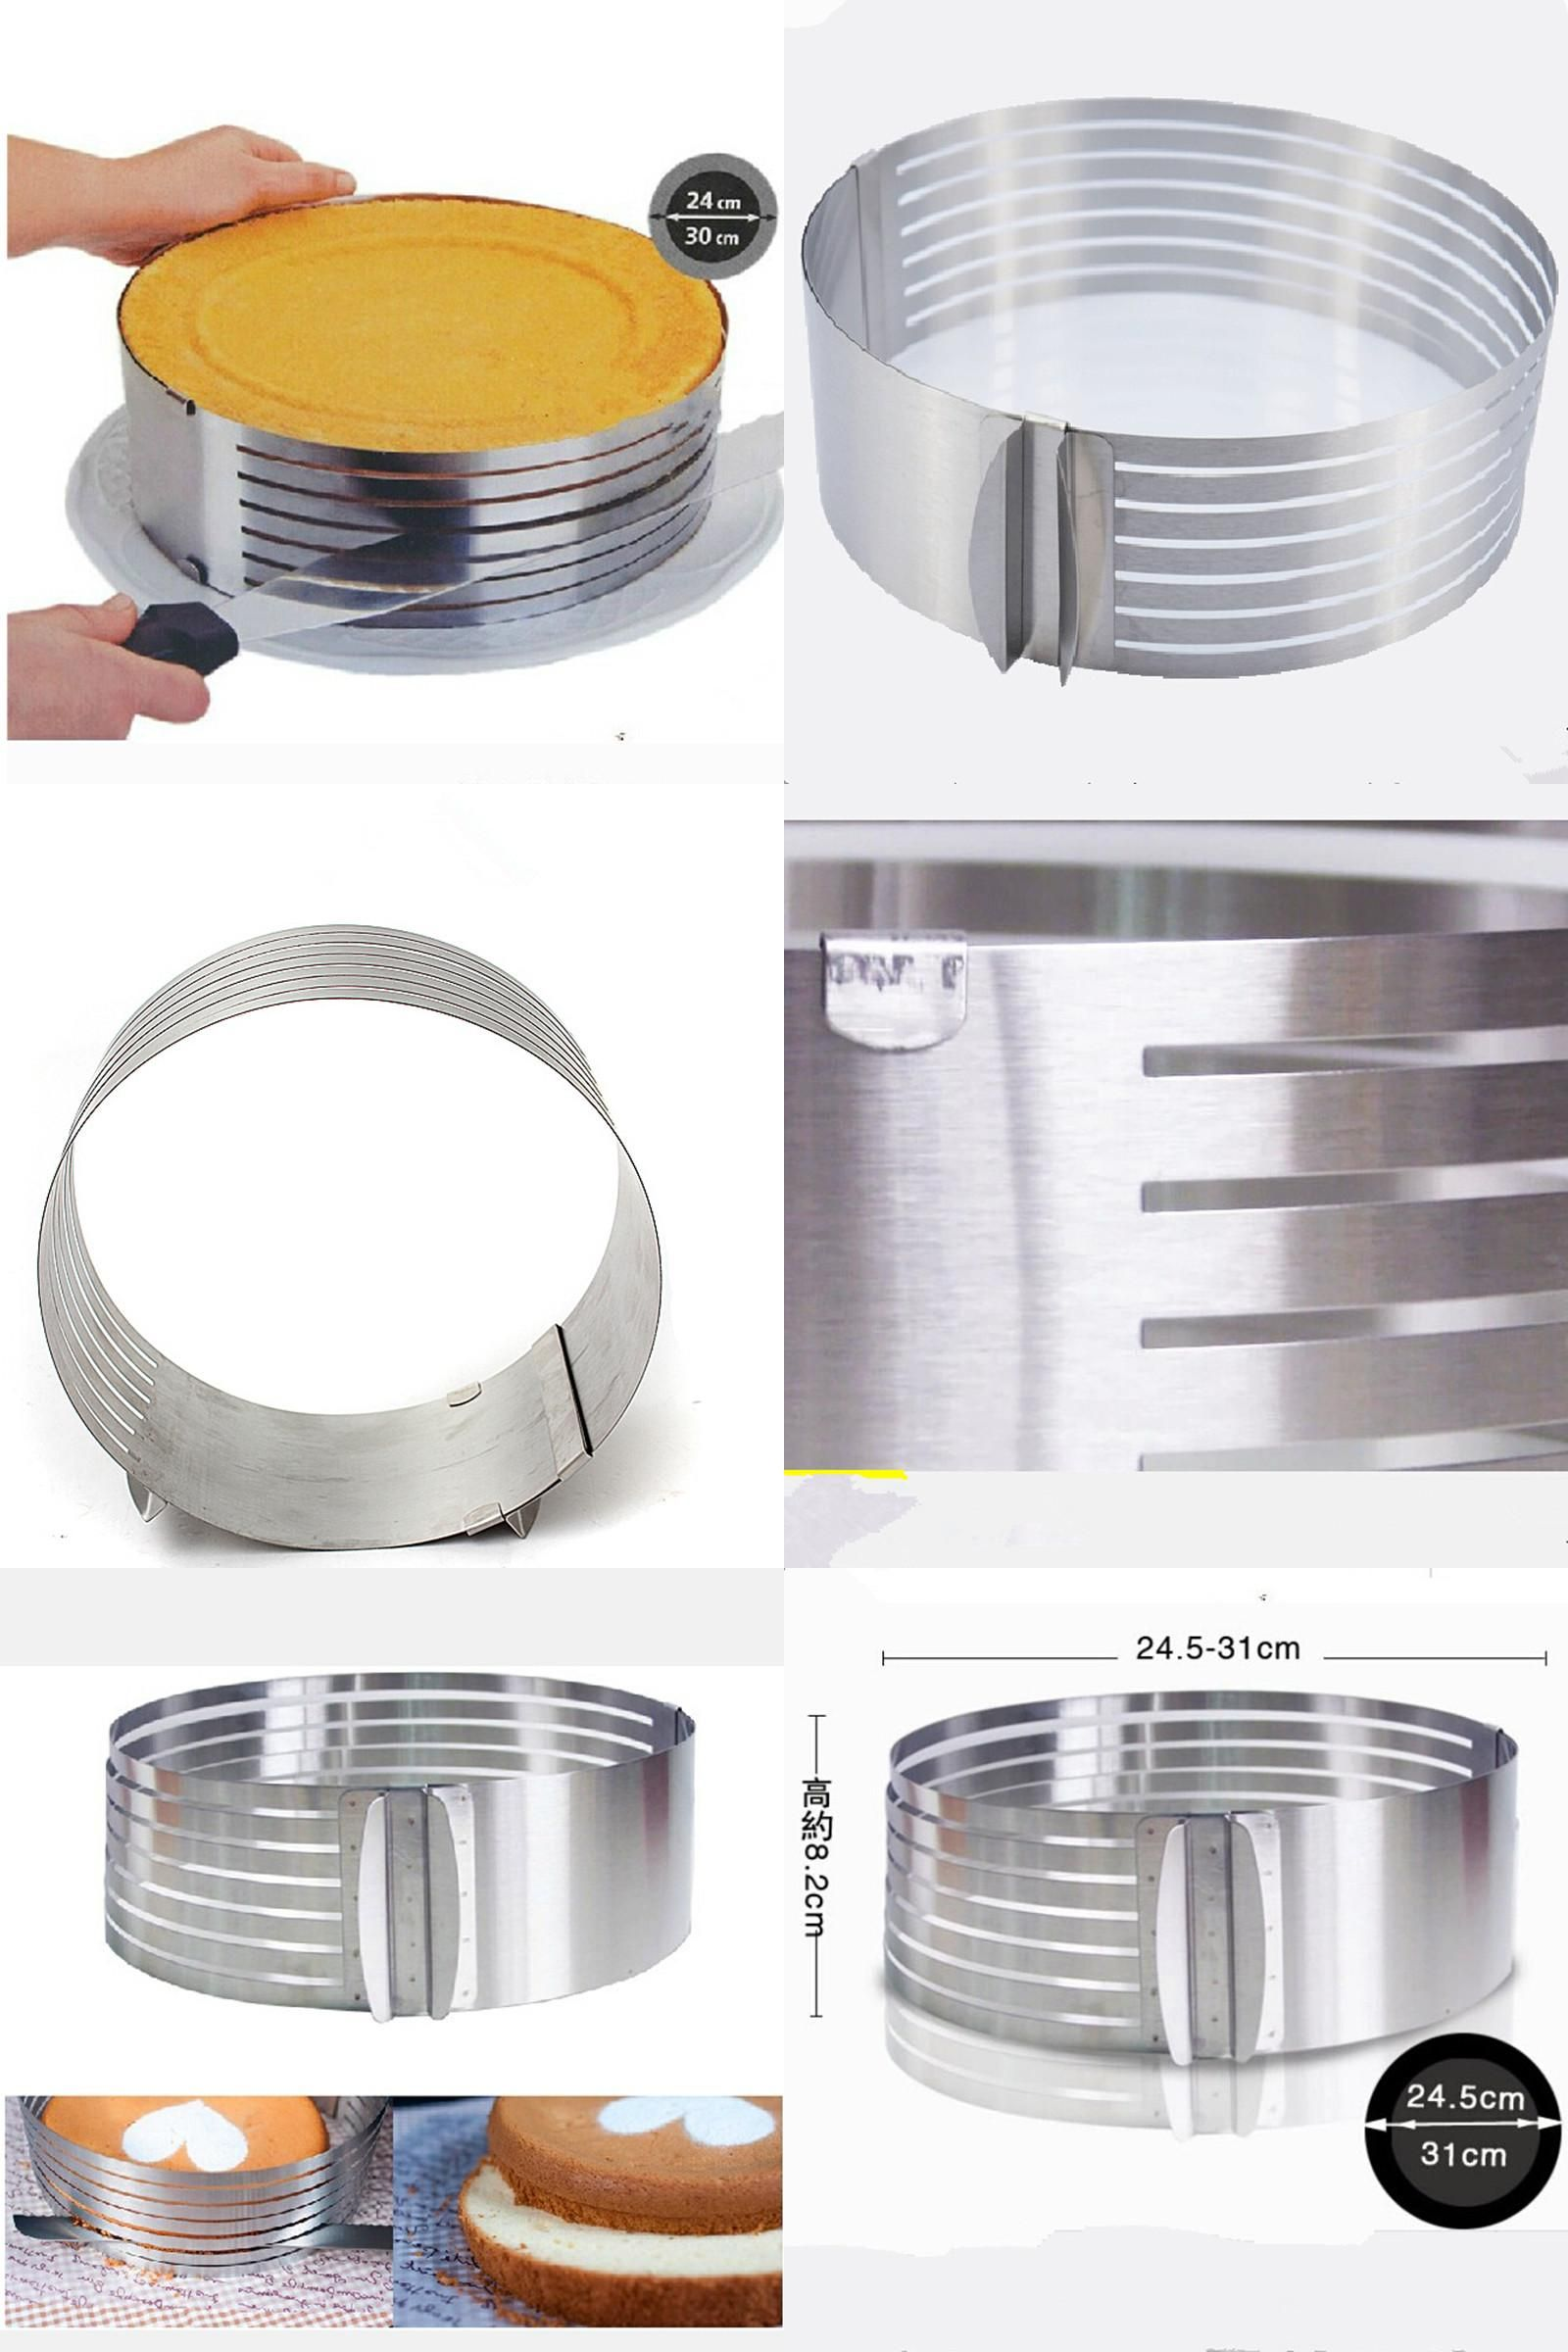 [Visit to Buy] Cutter  Metal Circle Adjustable Stainless Steel  Mousse Cake Layer Cut Tools Cake Slicer Device Mold Bakeware Cooking Cake Tools #Advertisement